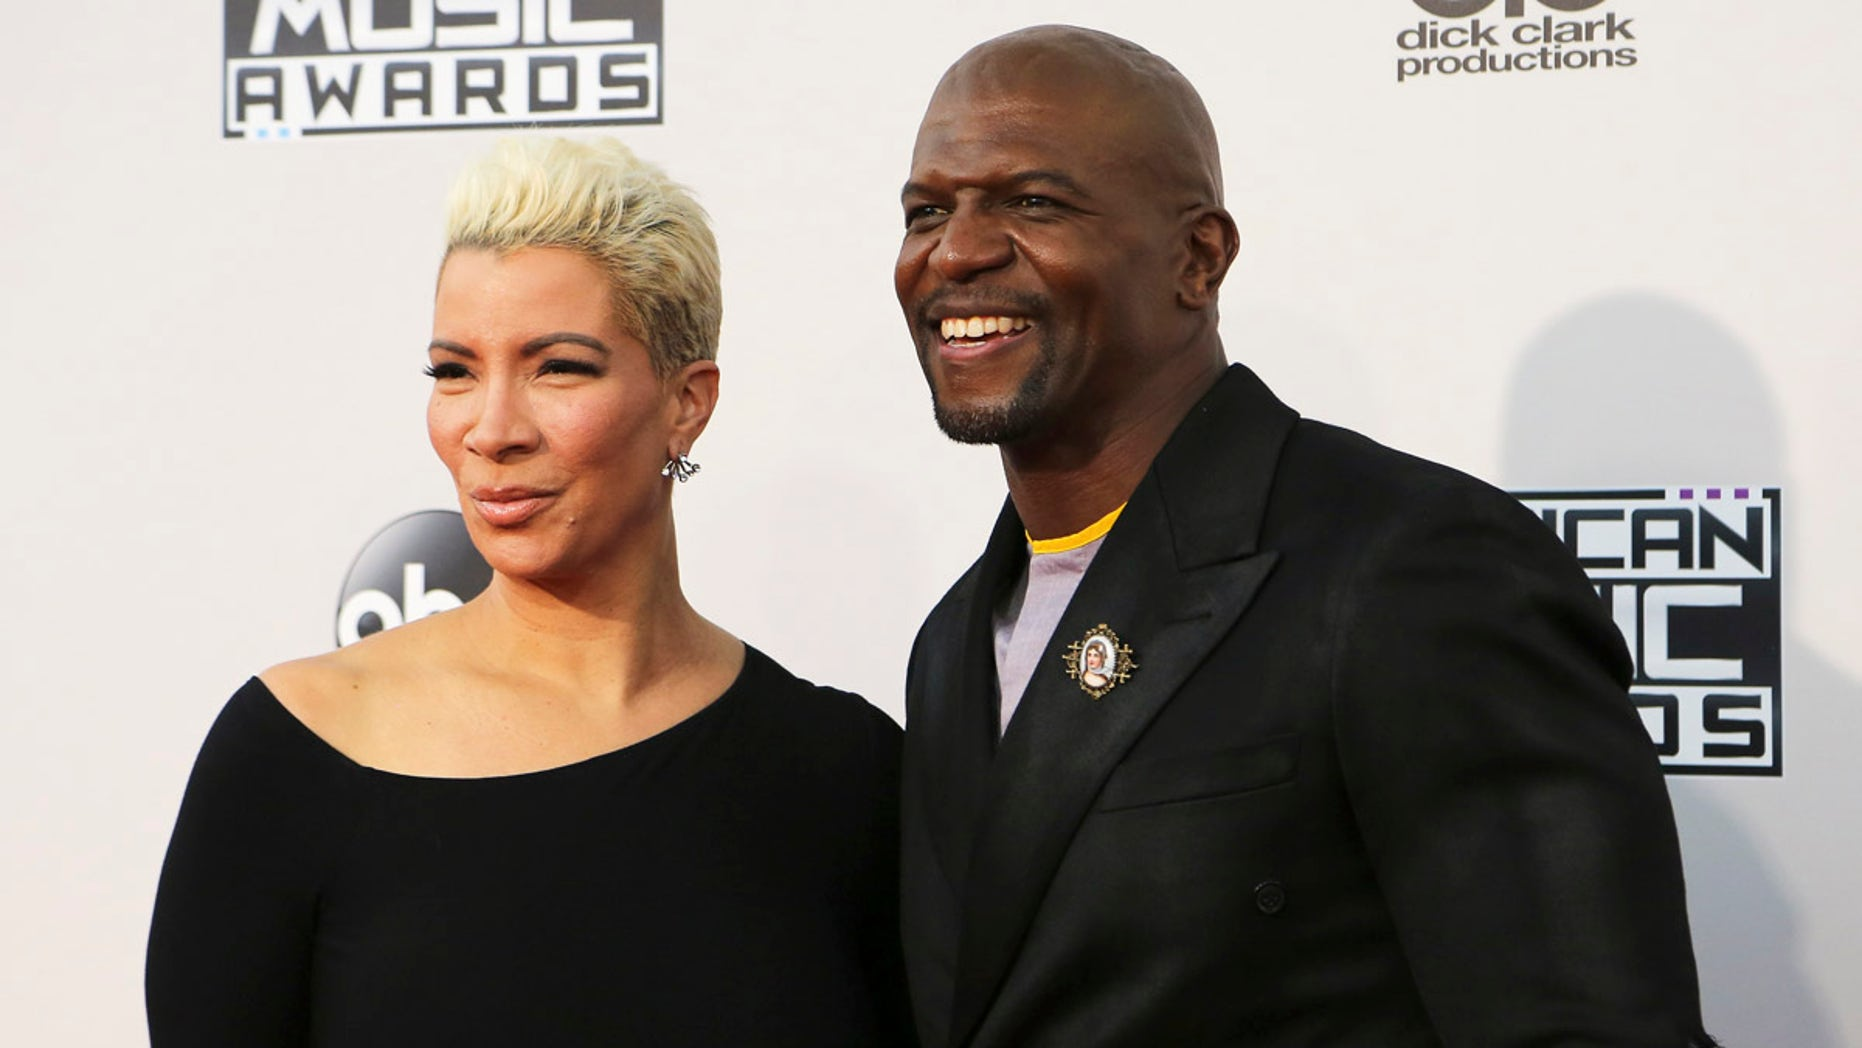 WMEs Adam Venit On Leave After Terry Crews Sexual Harassment